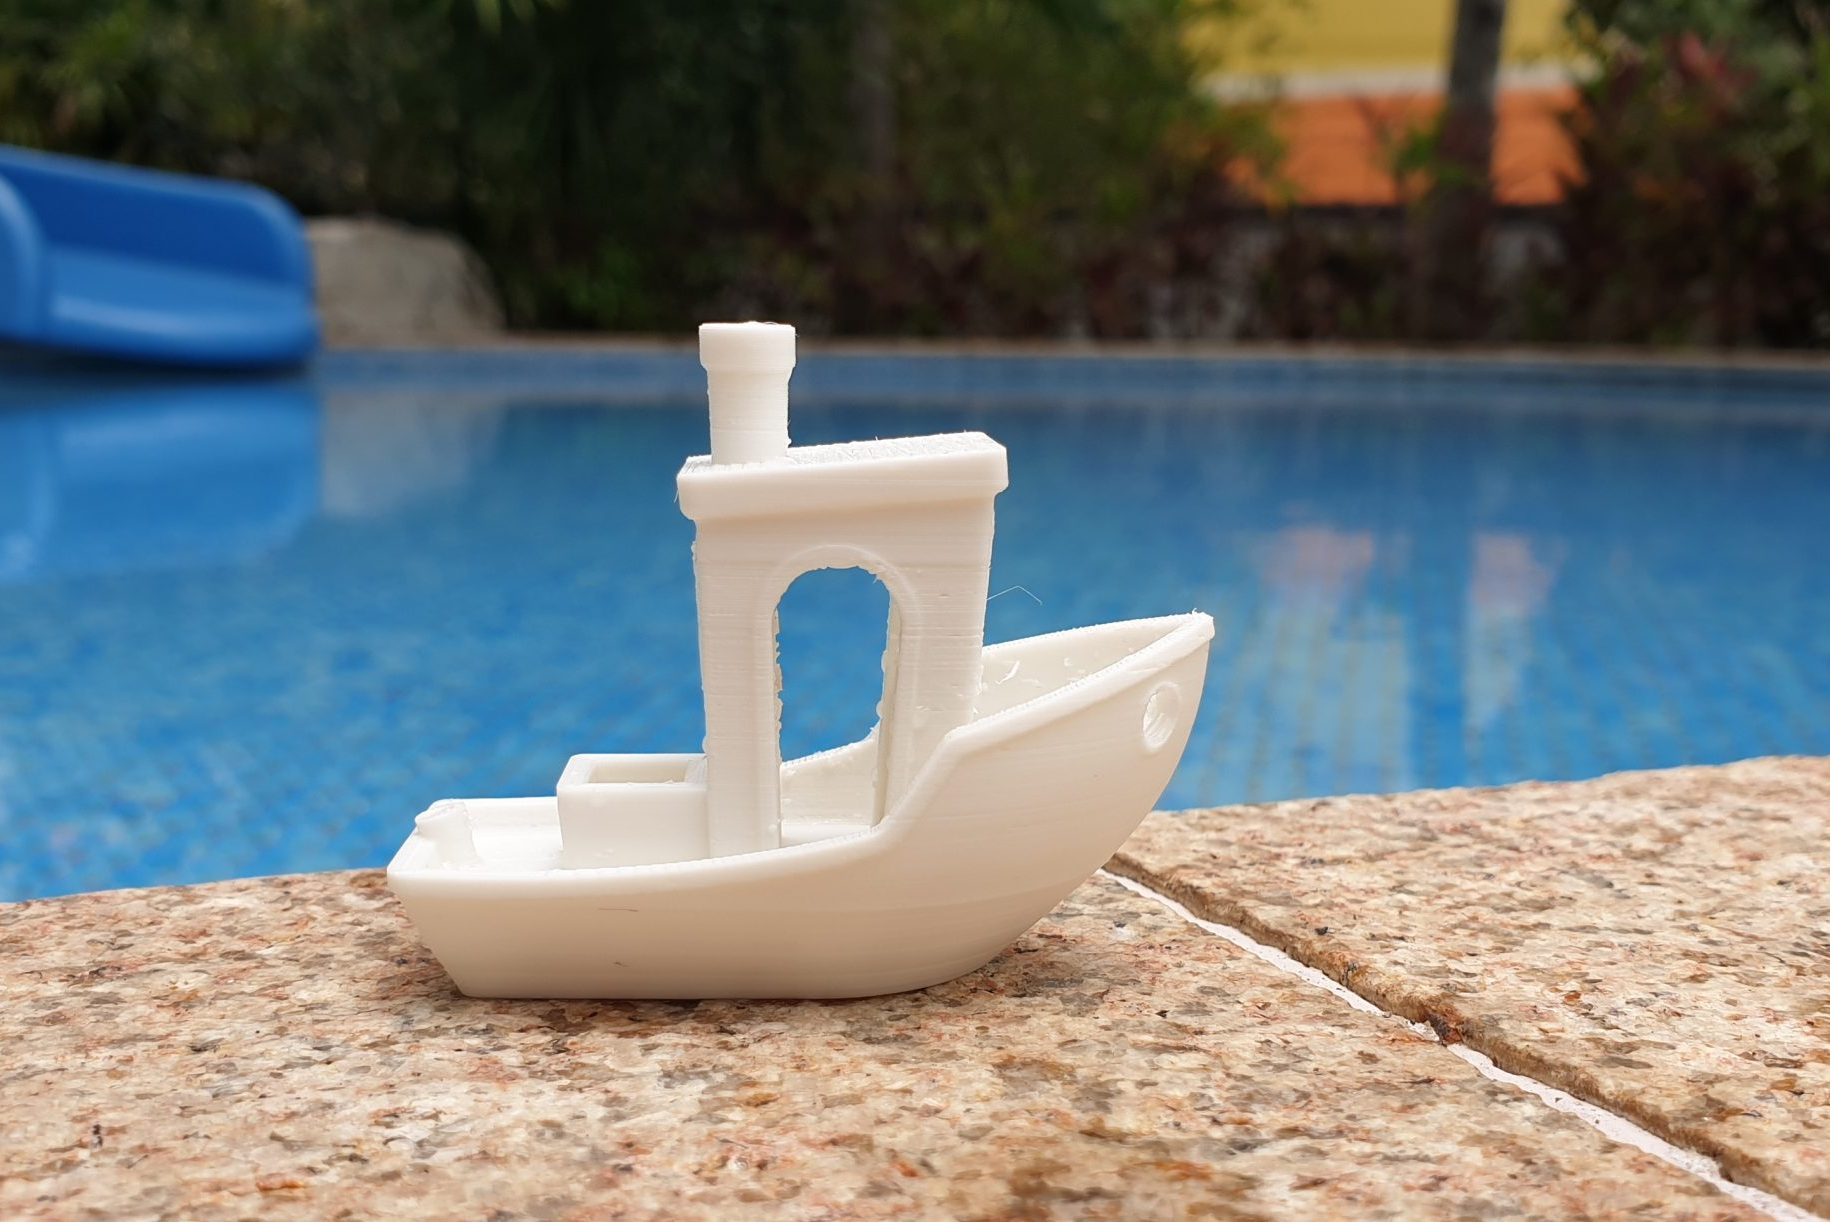 3DBenchy to torture test print your 3D printer